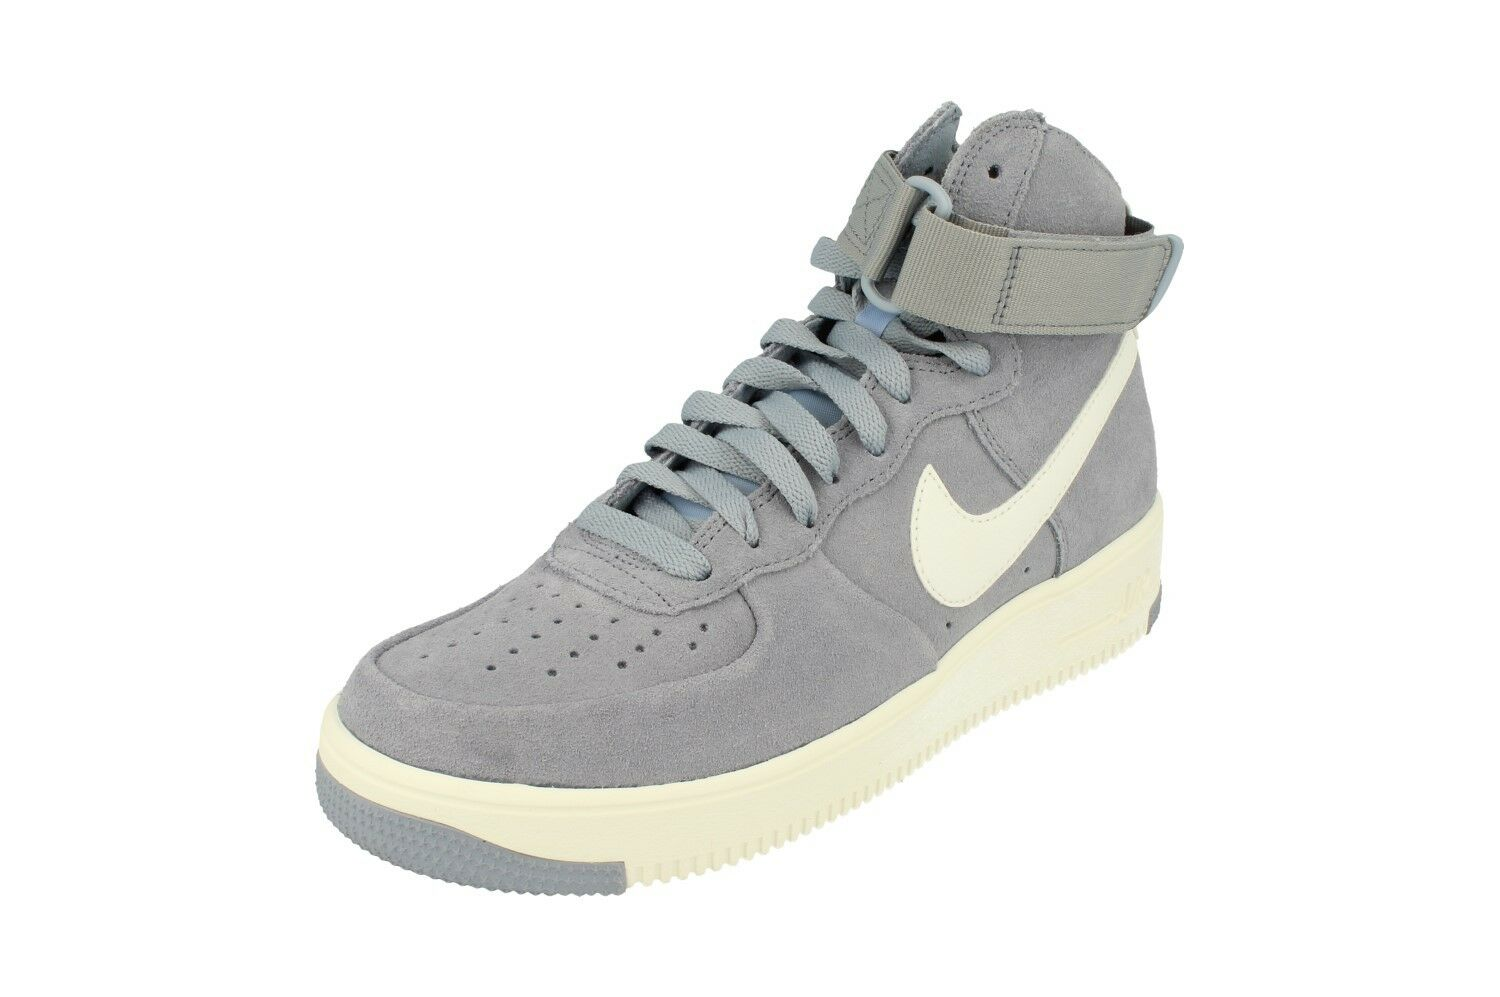 Nike Air Force 1 Ultraforce Hi Mens Trainers 880854 Sneakers Shoes  004